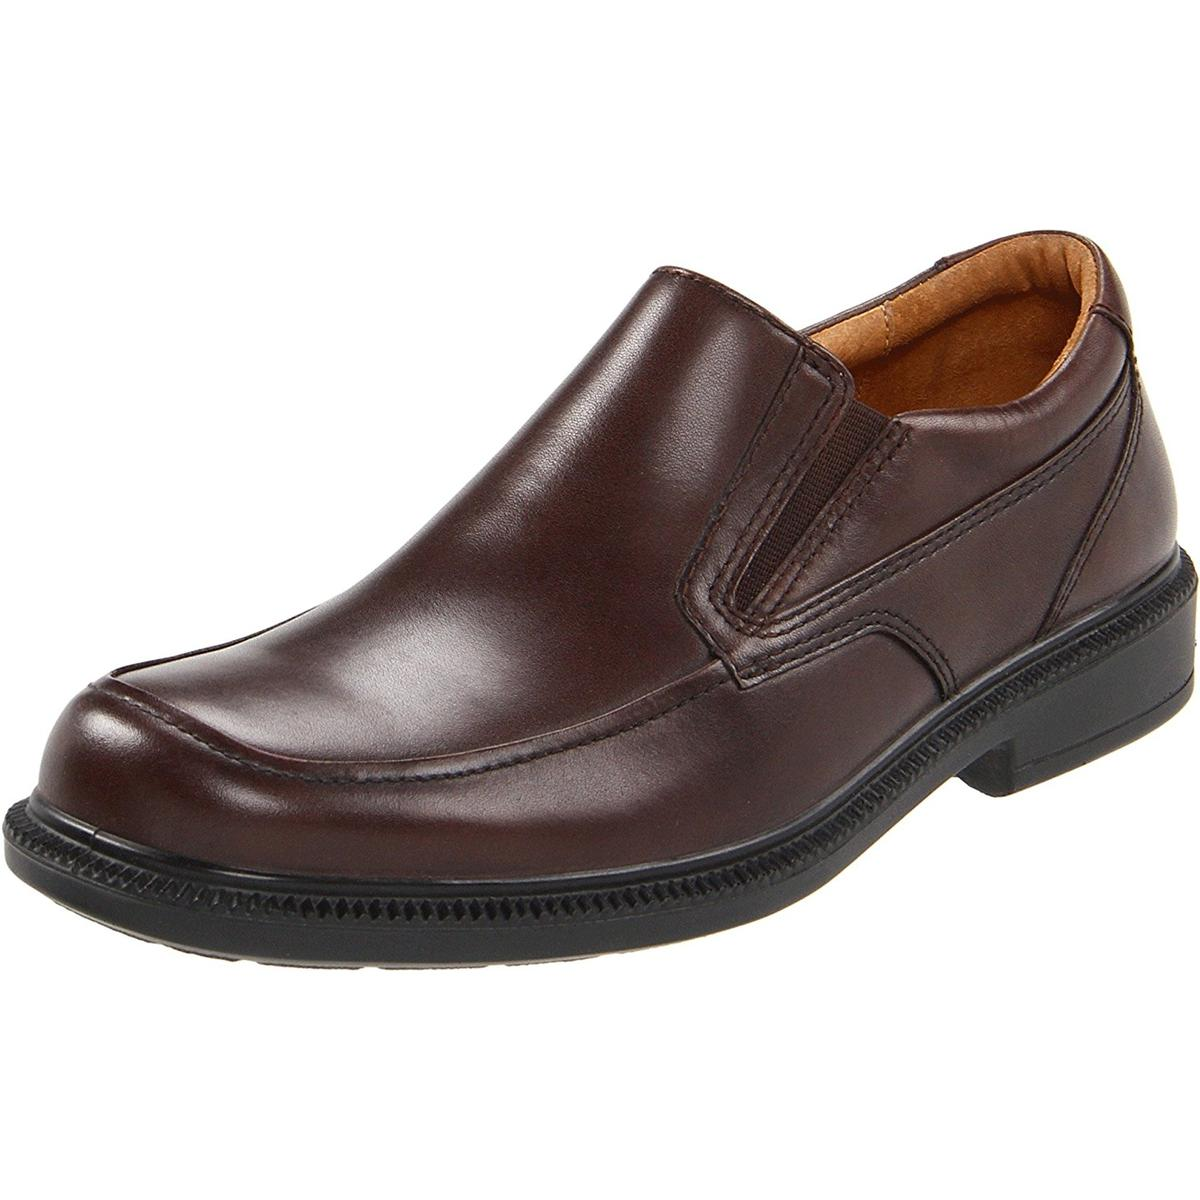 Hush Puppies Leverage Mens Brown Loafers by Hush Puppies